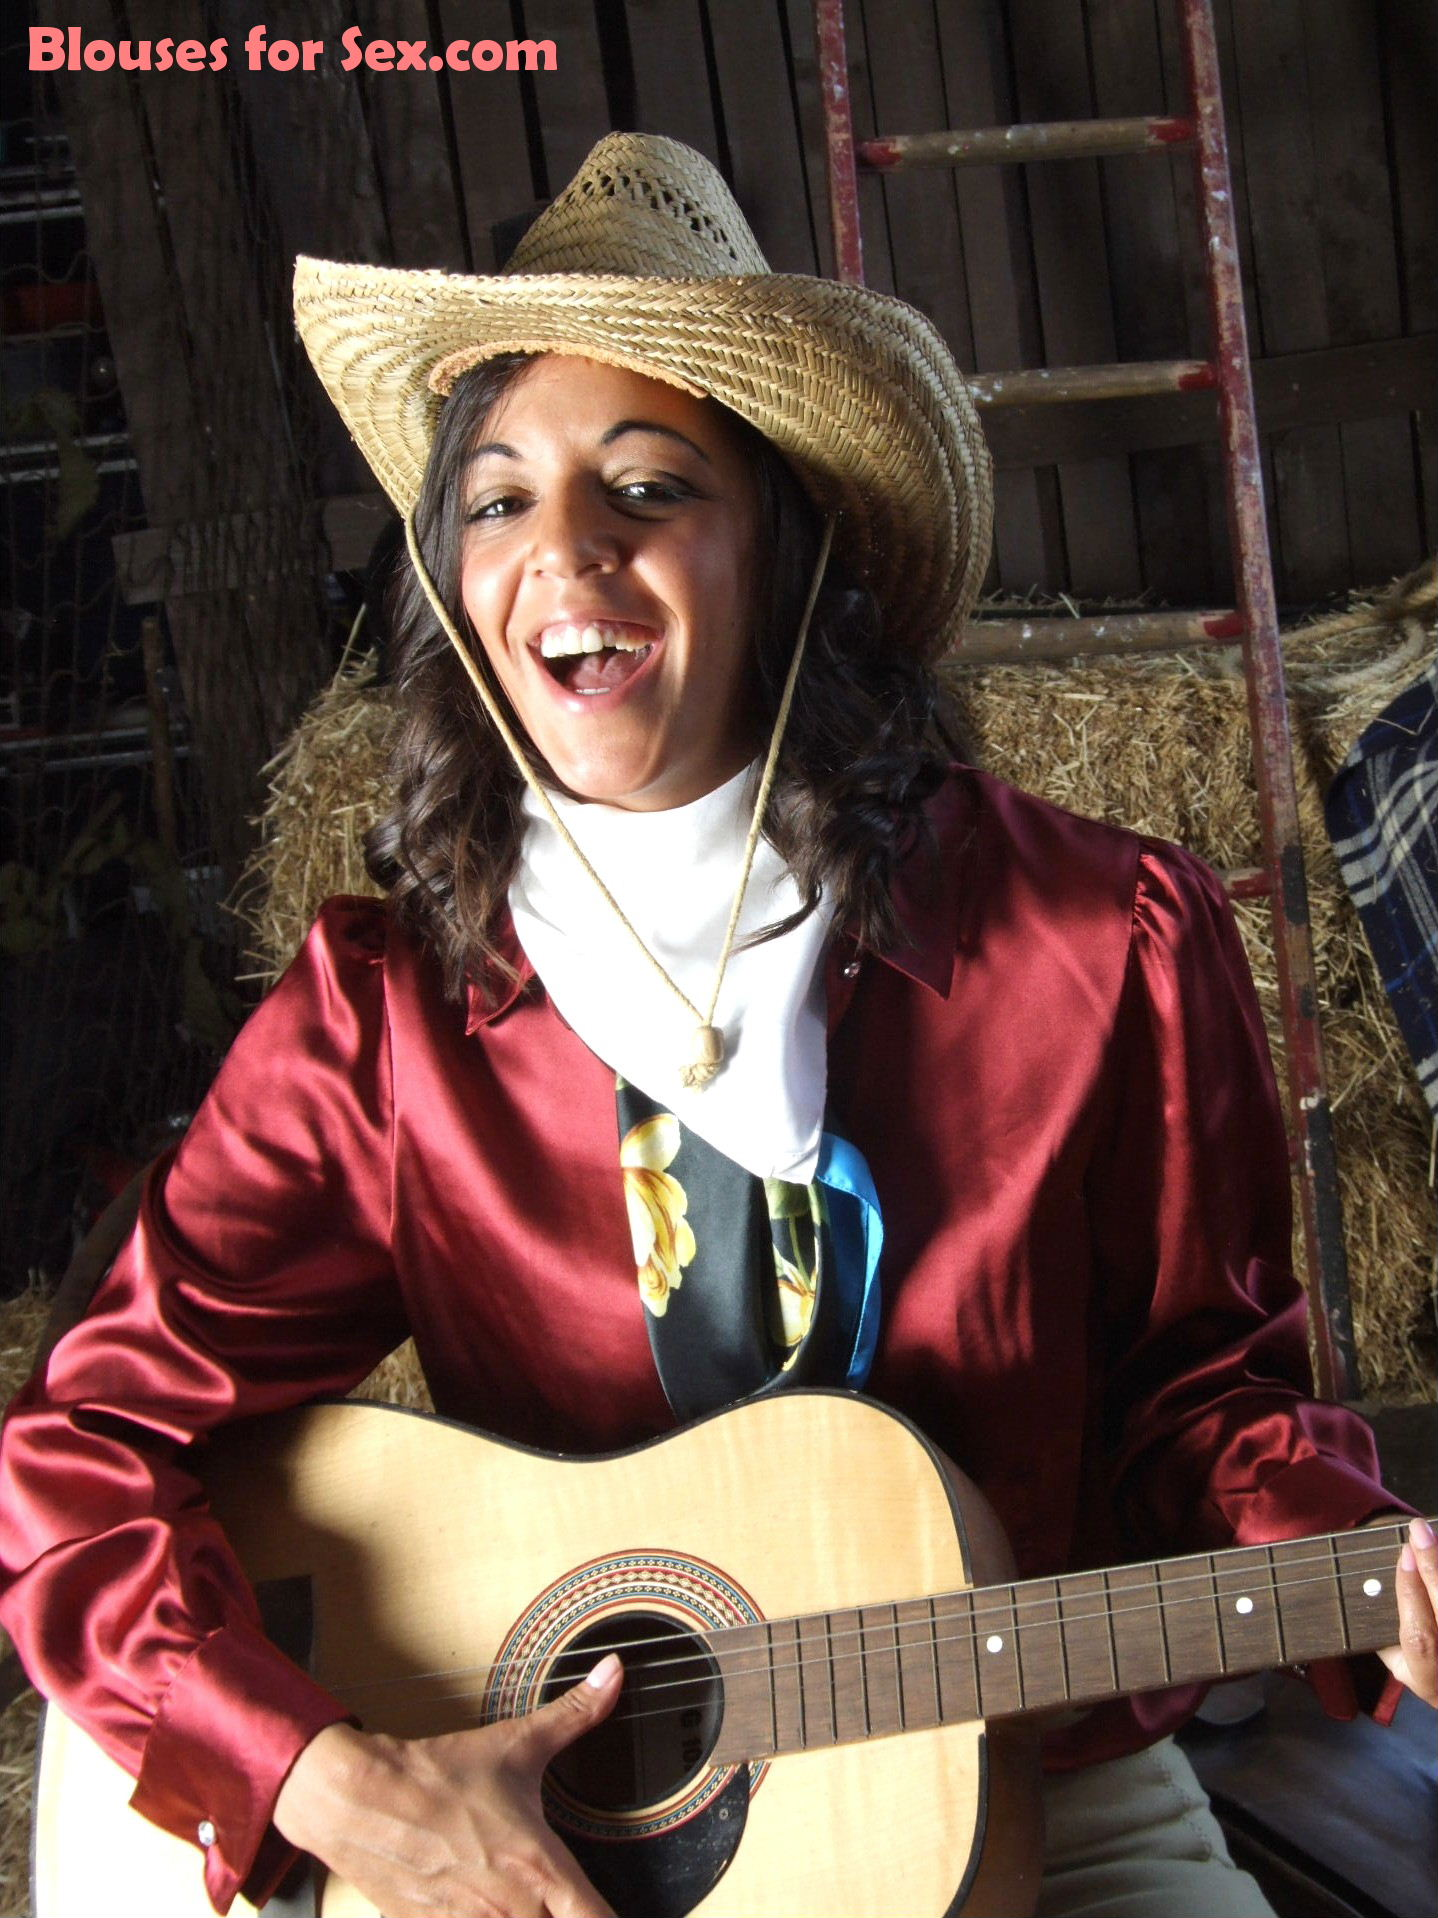 The Singing Satin Cowgirl